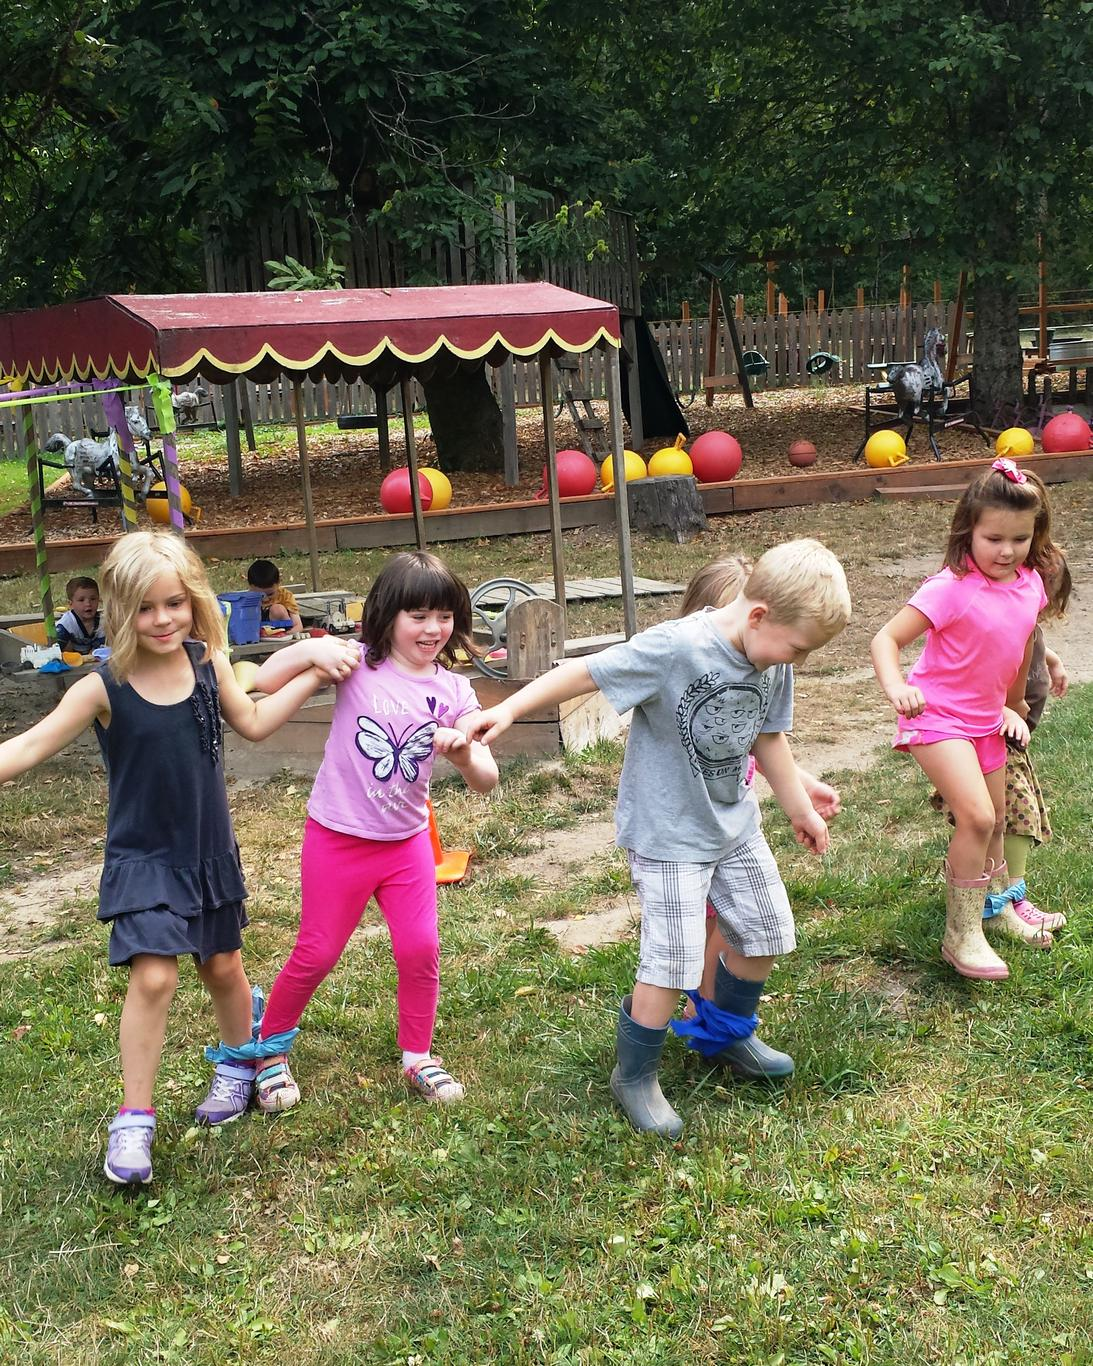 Children's foot race on the last day of summer camp